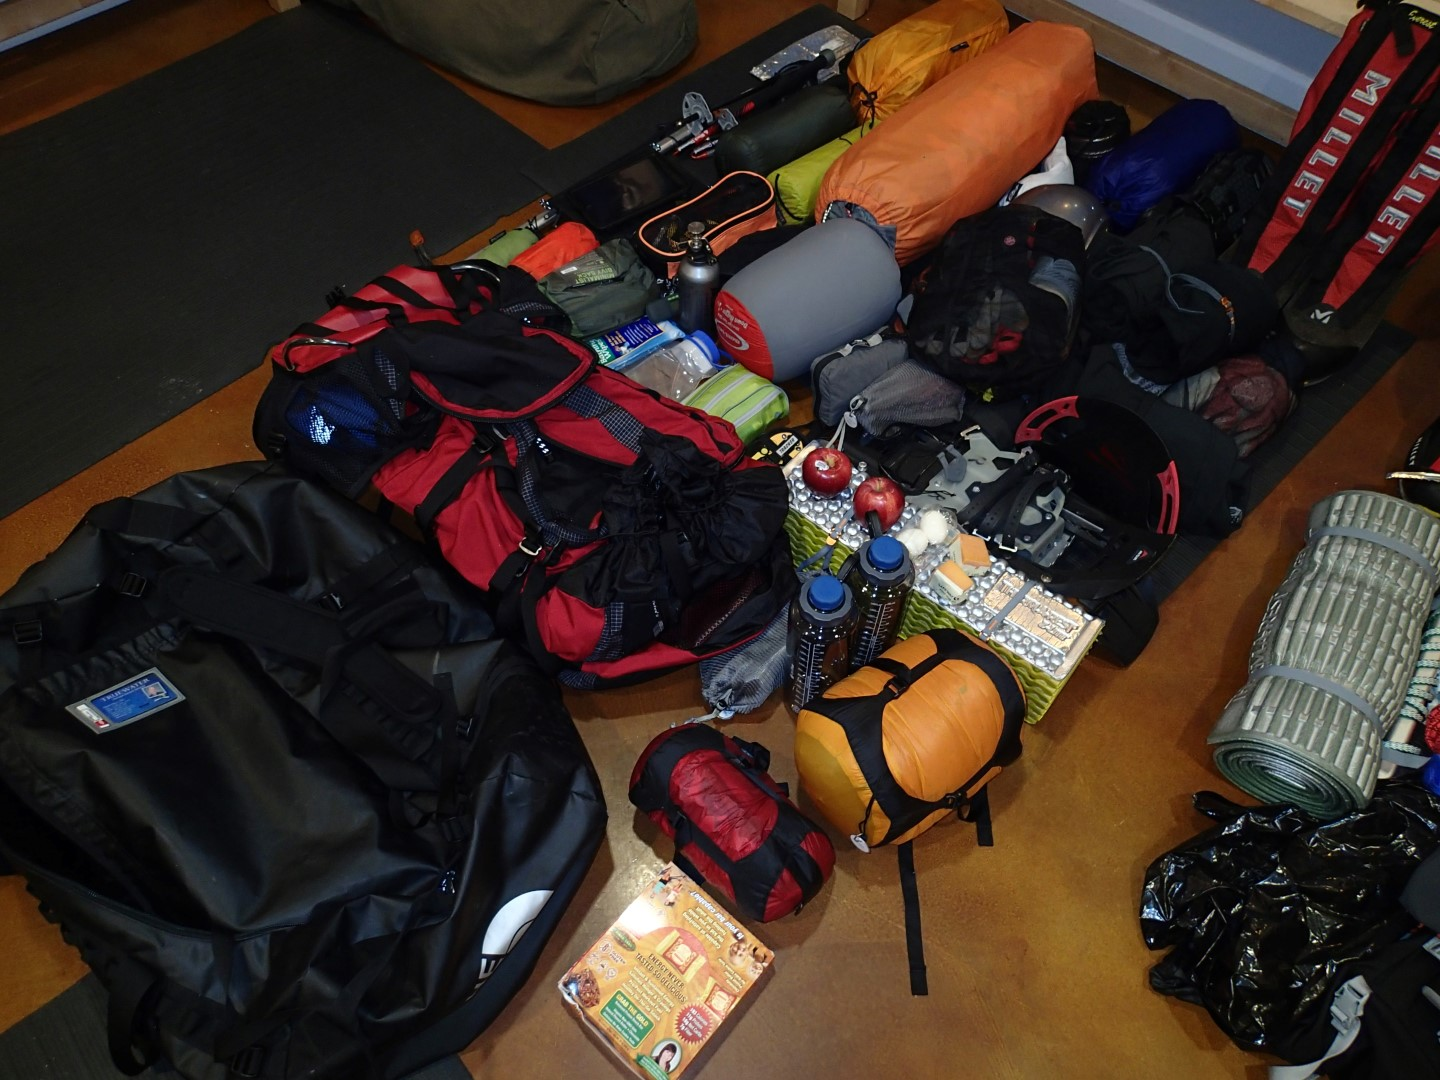 Rob's Loadout was 113lbs